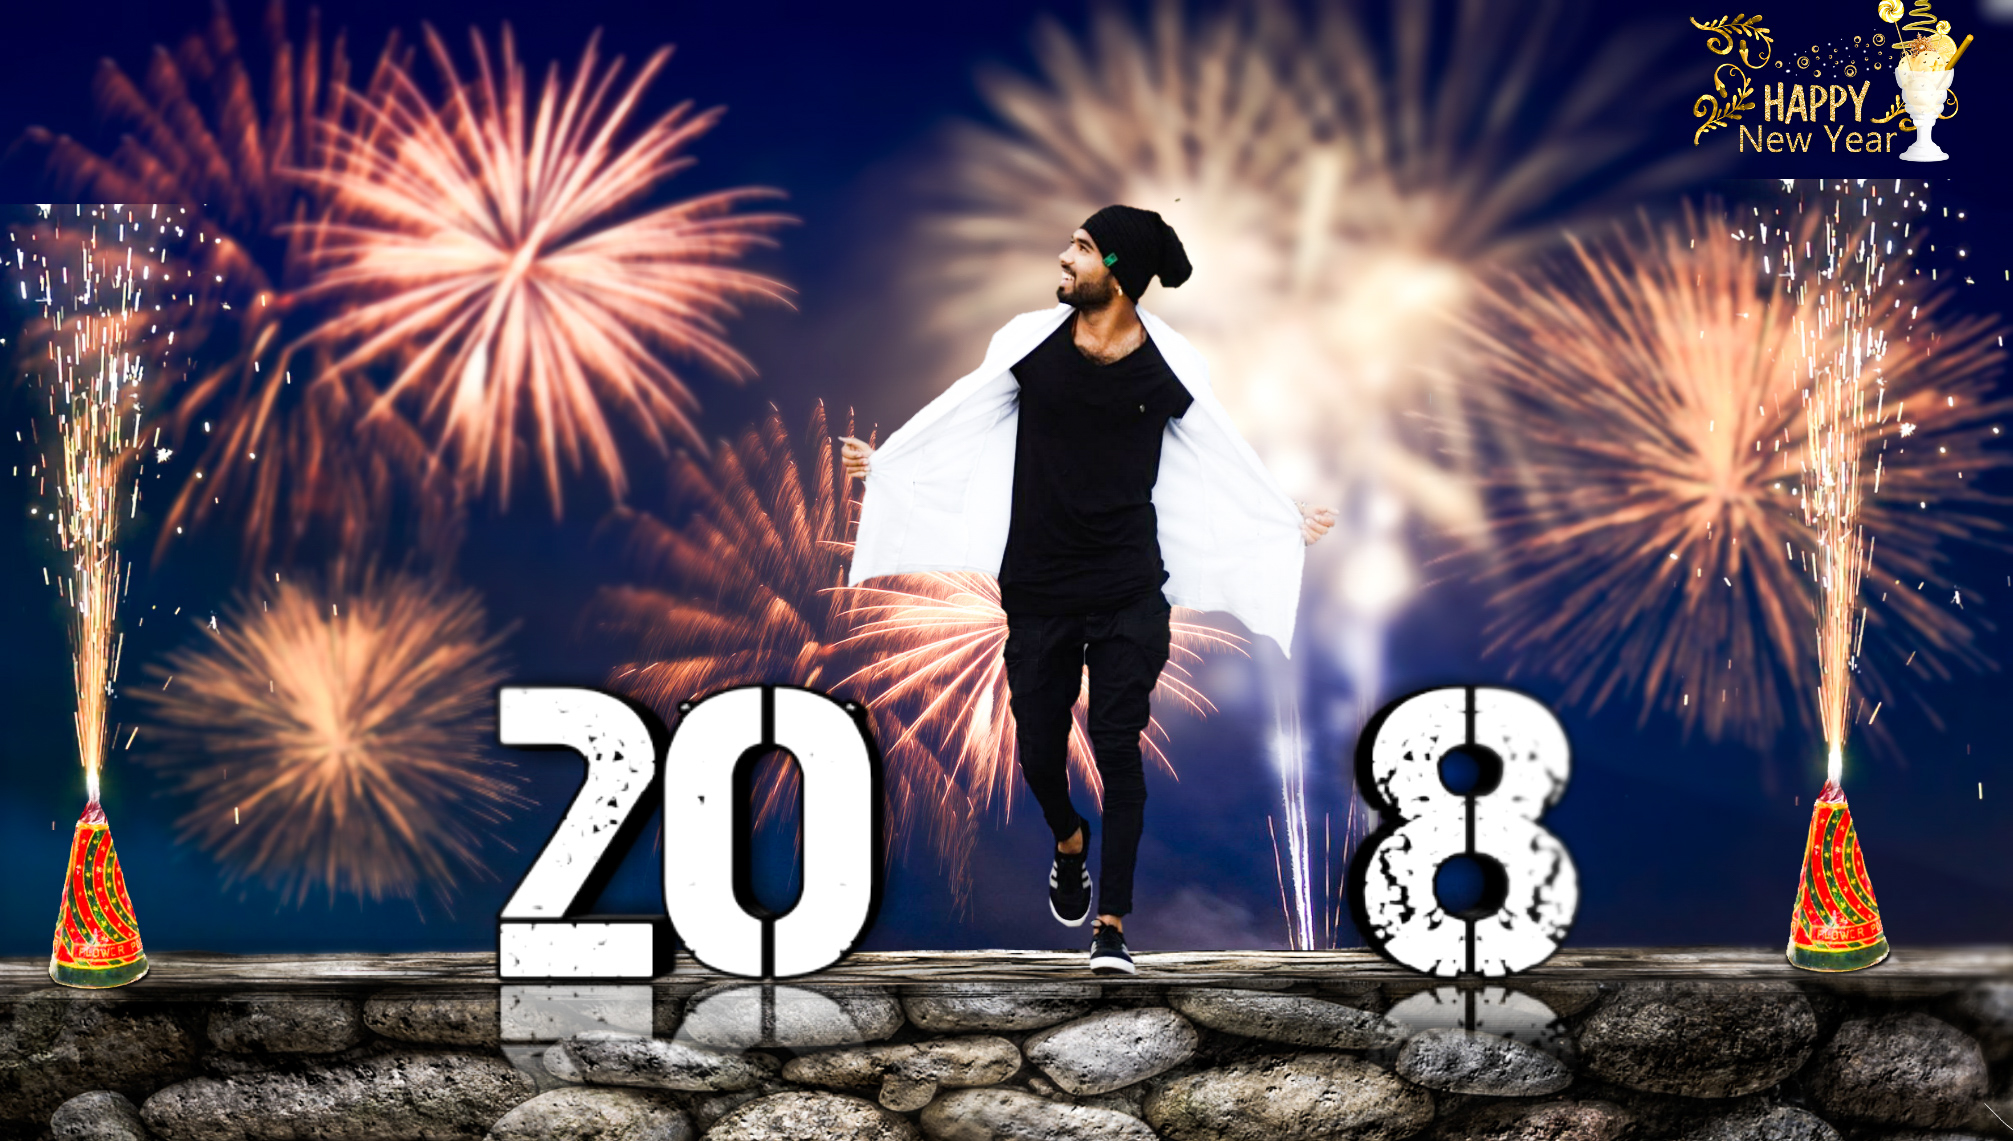 New Year 2018 Editing png.